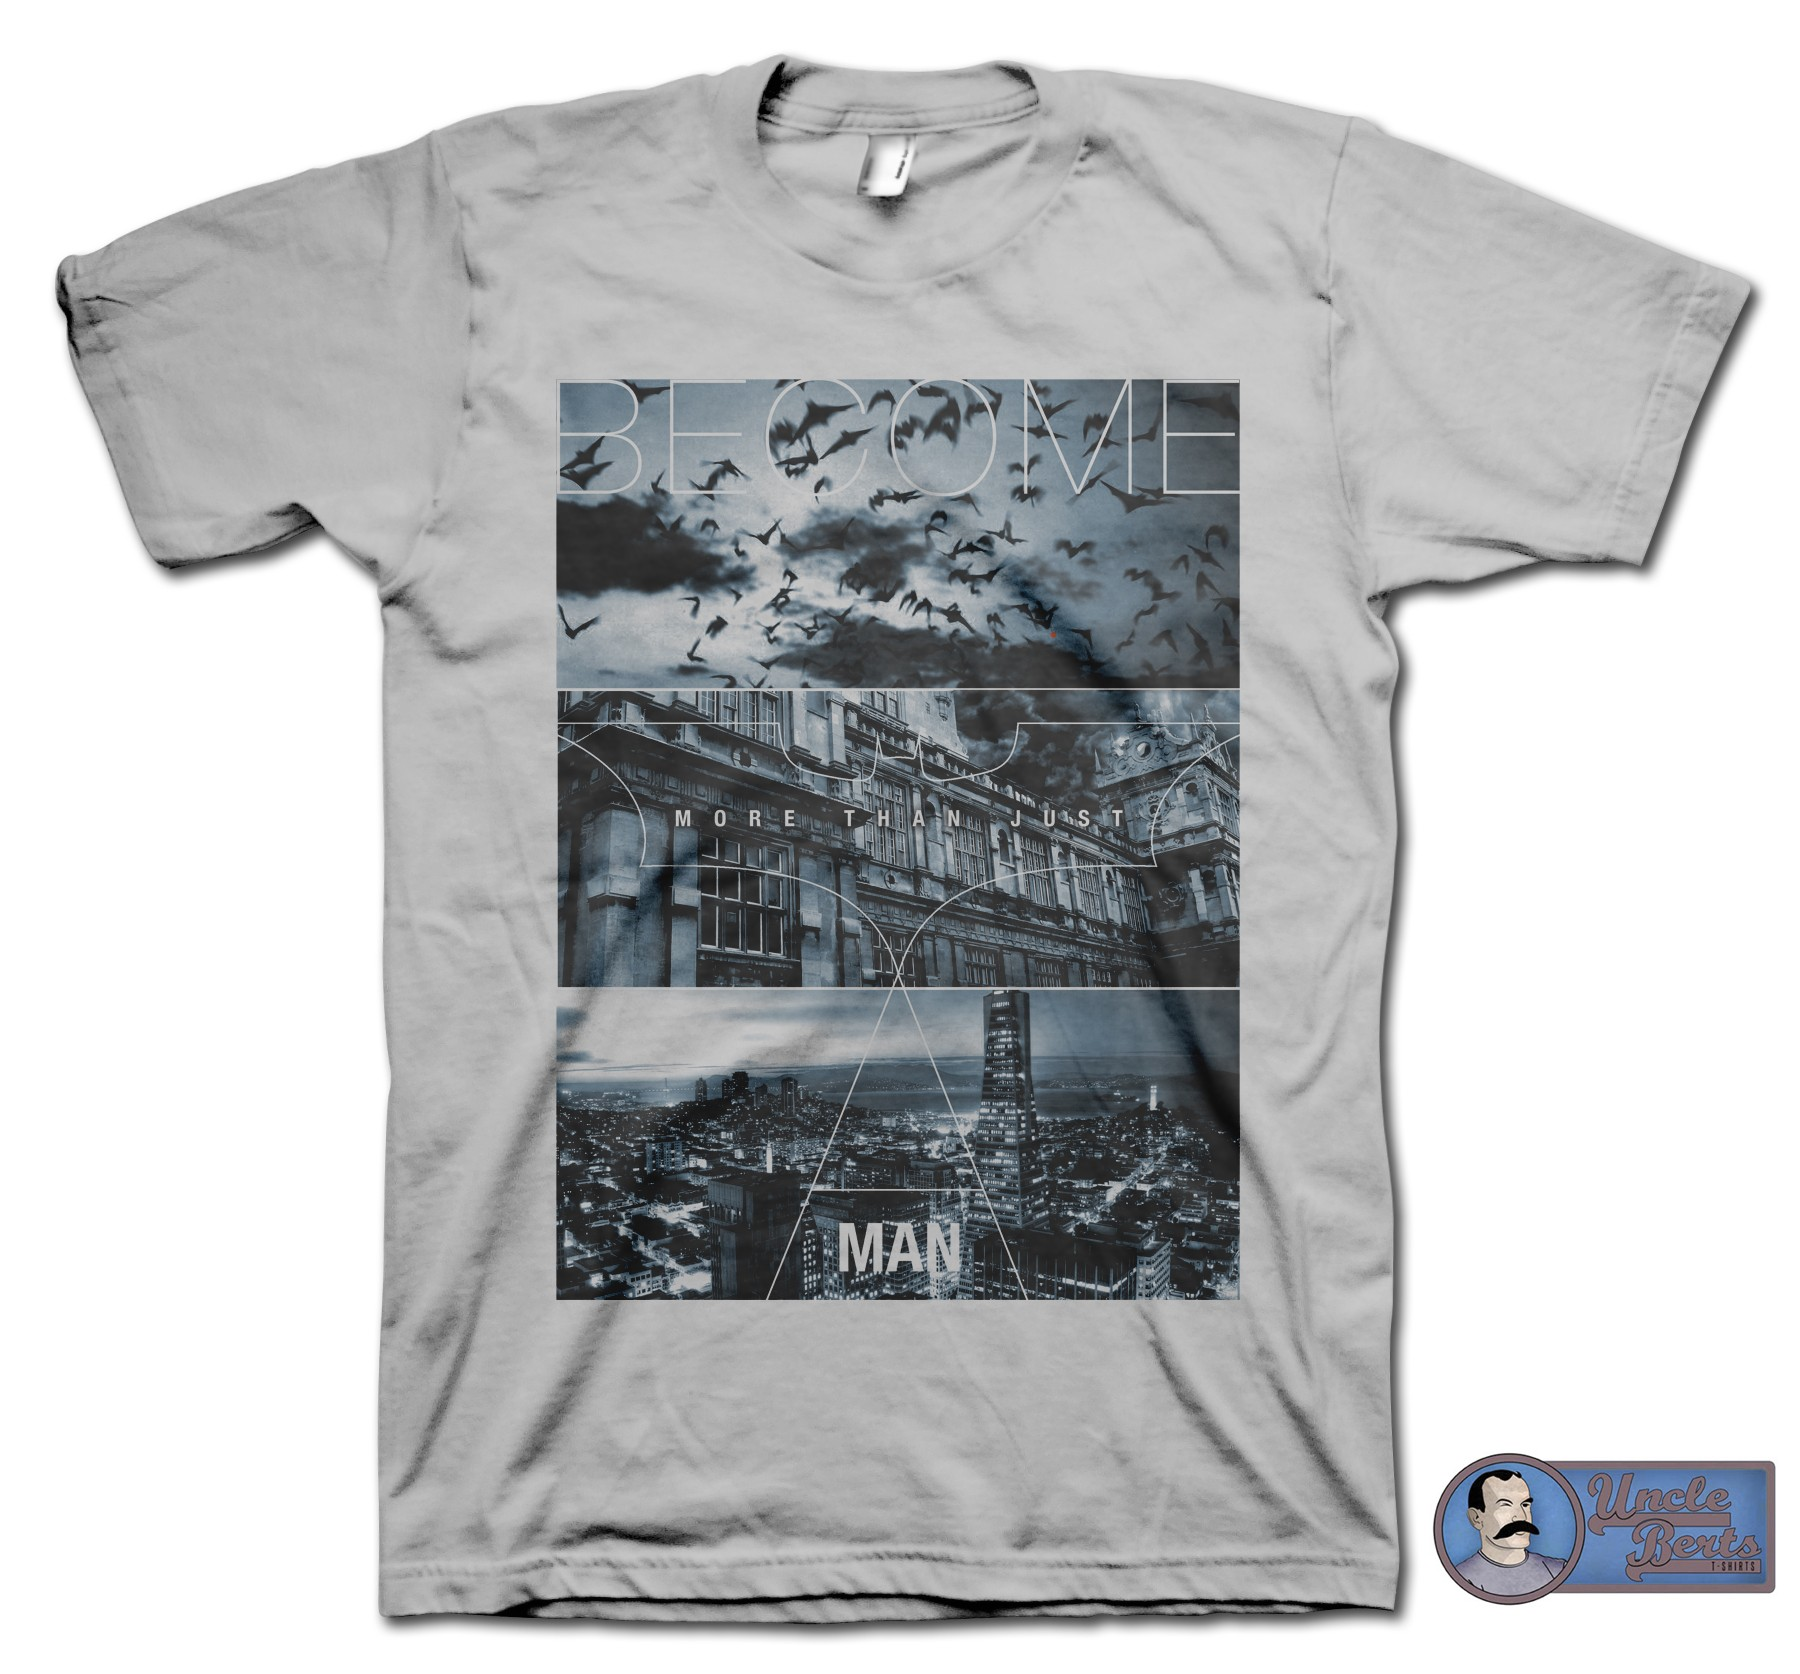 More than just a Man - inspired by Batman Begins (2005) T-shirt